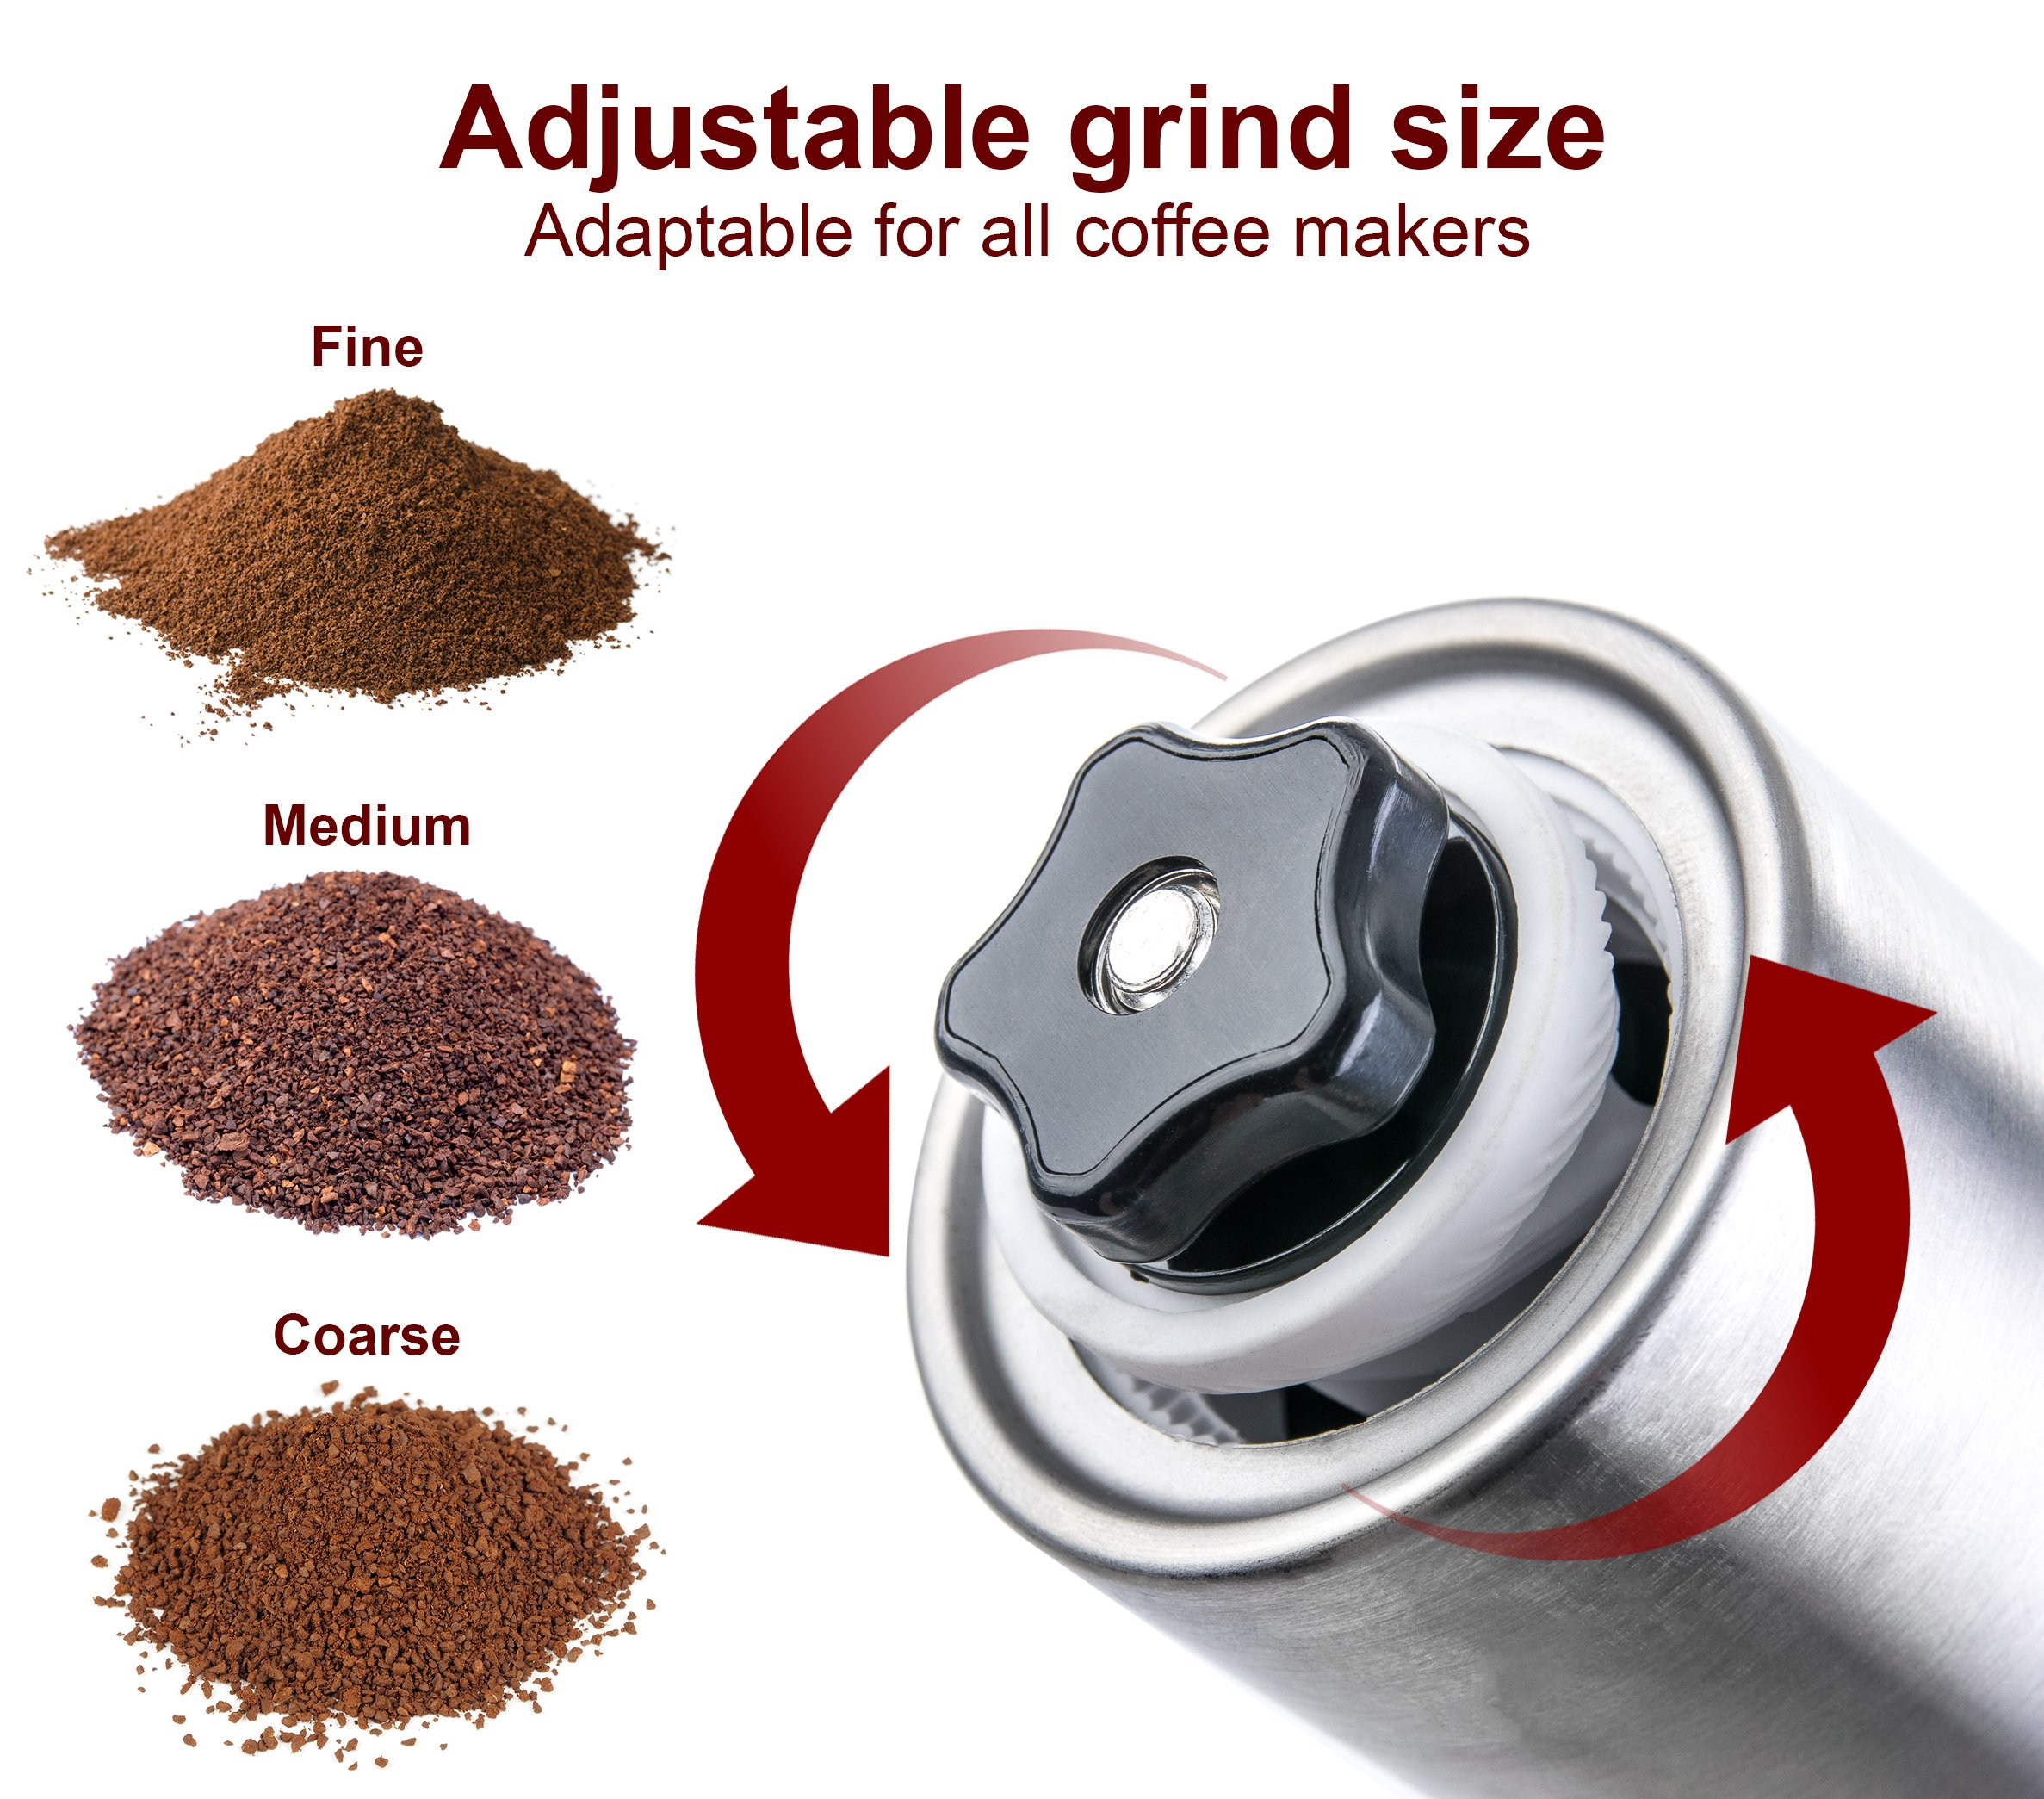 Henry-Charles-Manual-Coffee-Grinder-Stainless-Steel-with-Adjustable-Ceramic-Conical-Burr-Hand-Crank-Mill-Compact-Size-Perfect-for-Your-Home-Office-or-Travelling